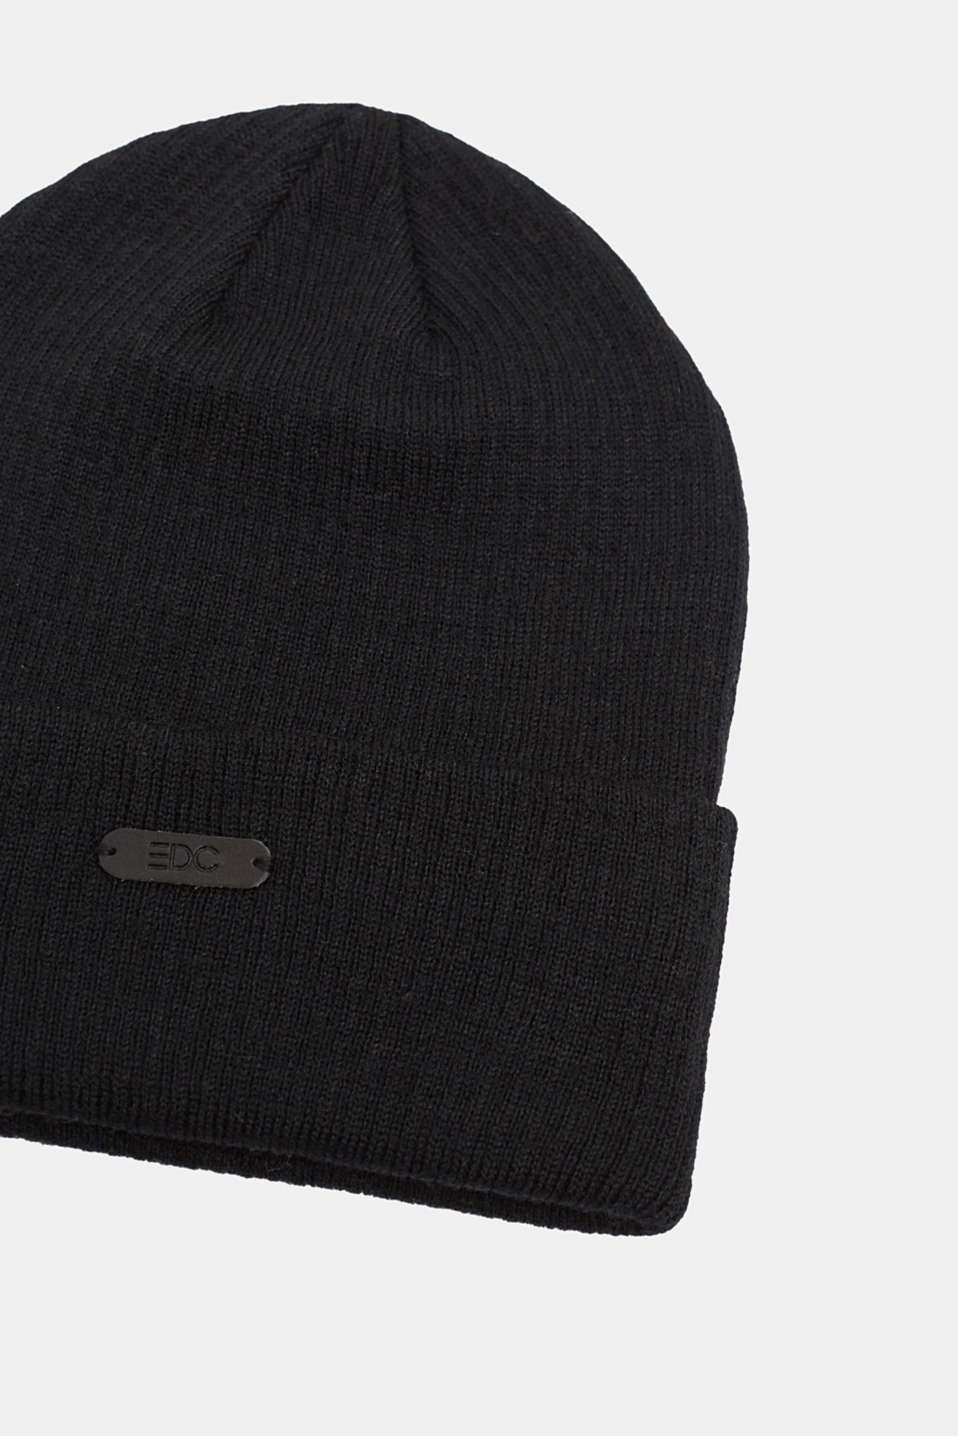 Beanie with Polylana®, BLACK, detail image number 1